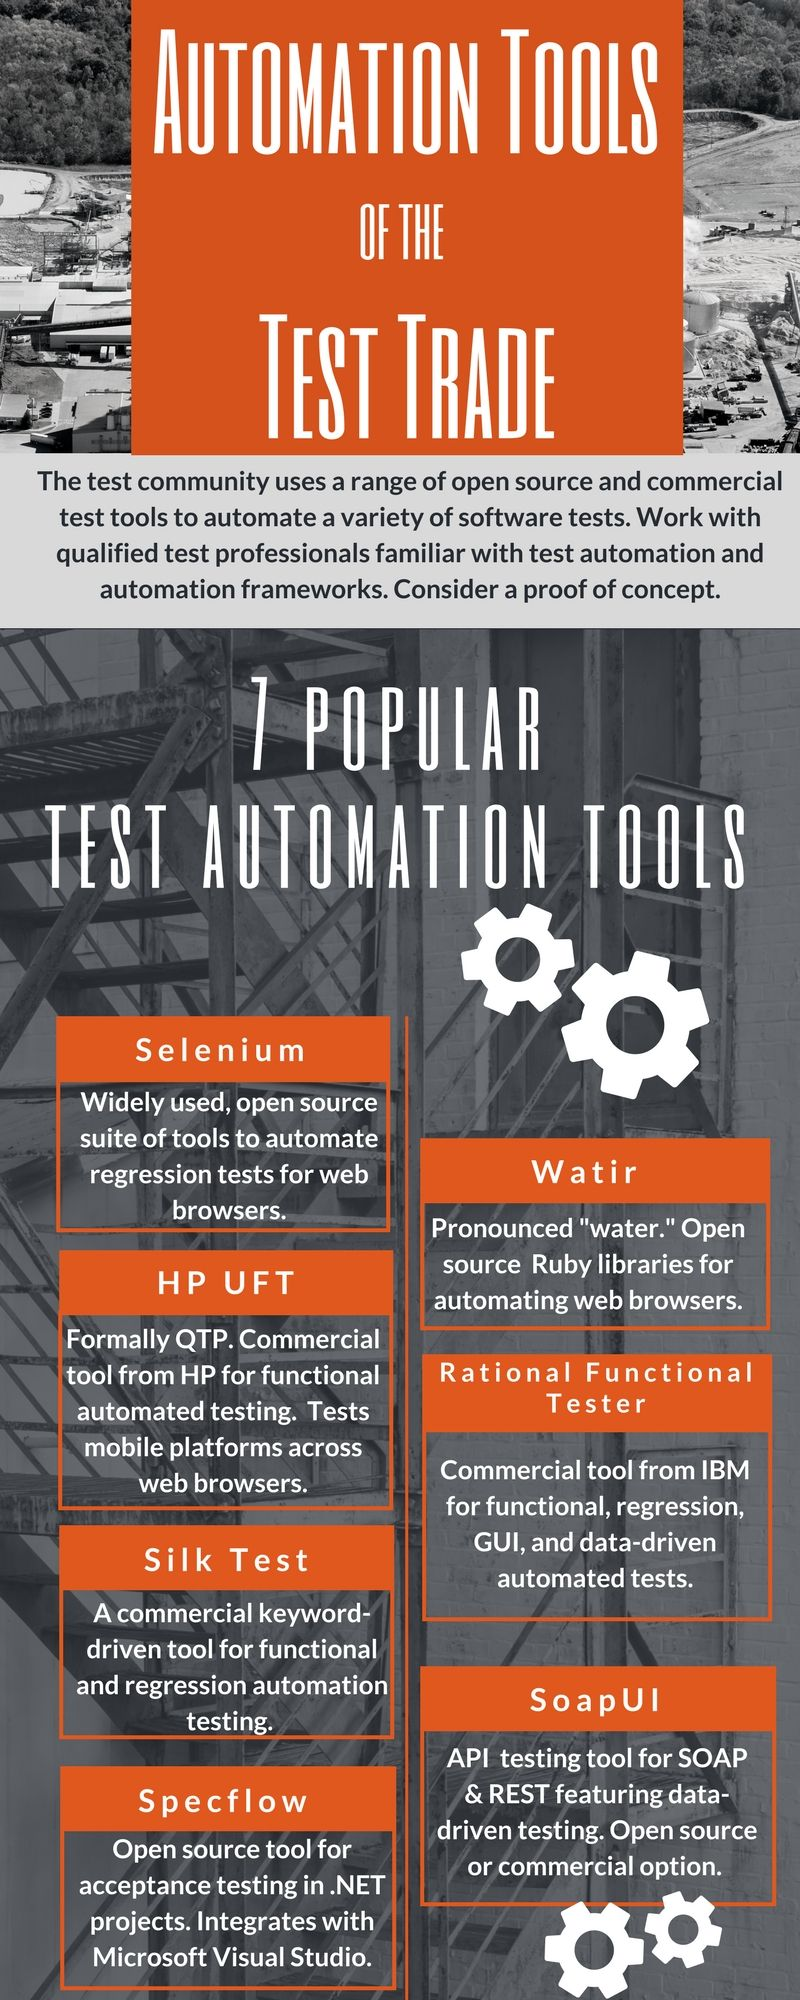 Software Automation Testing Basics |Smartsheet